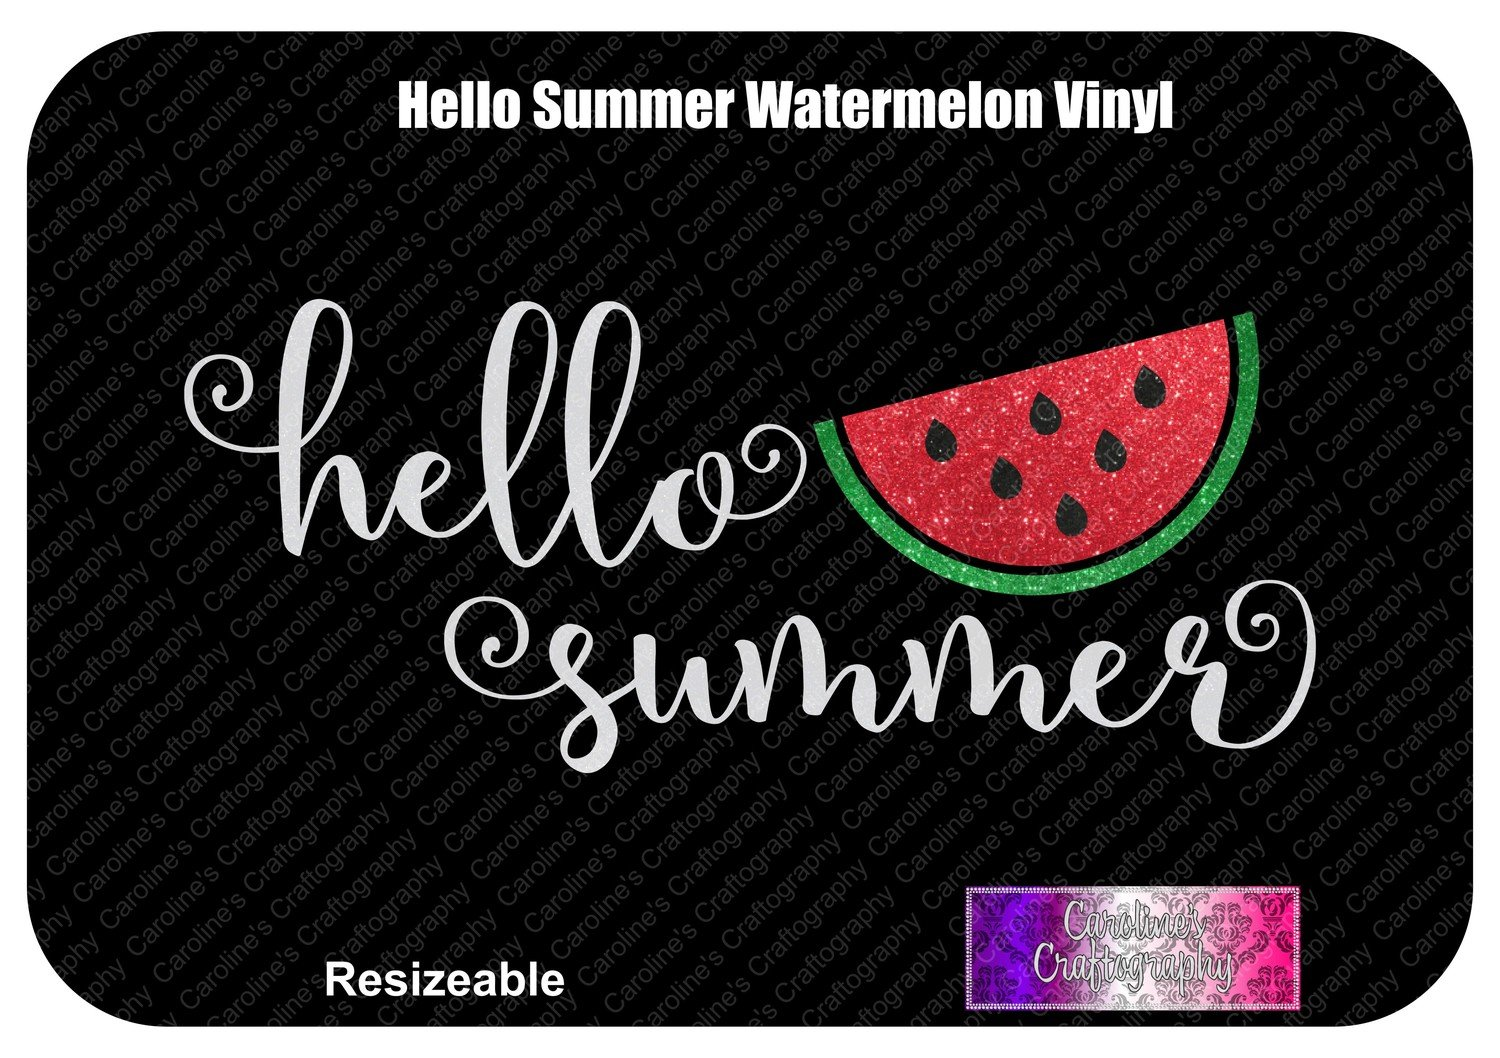 Hello Summer Watermelon Vinyl